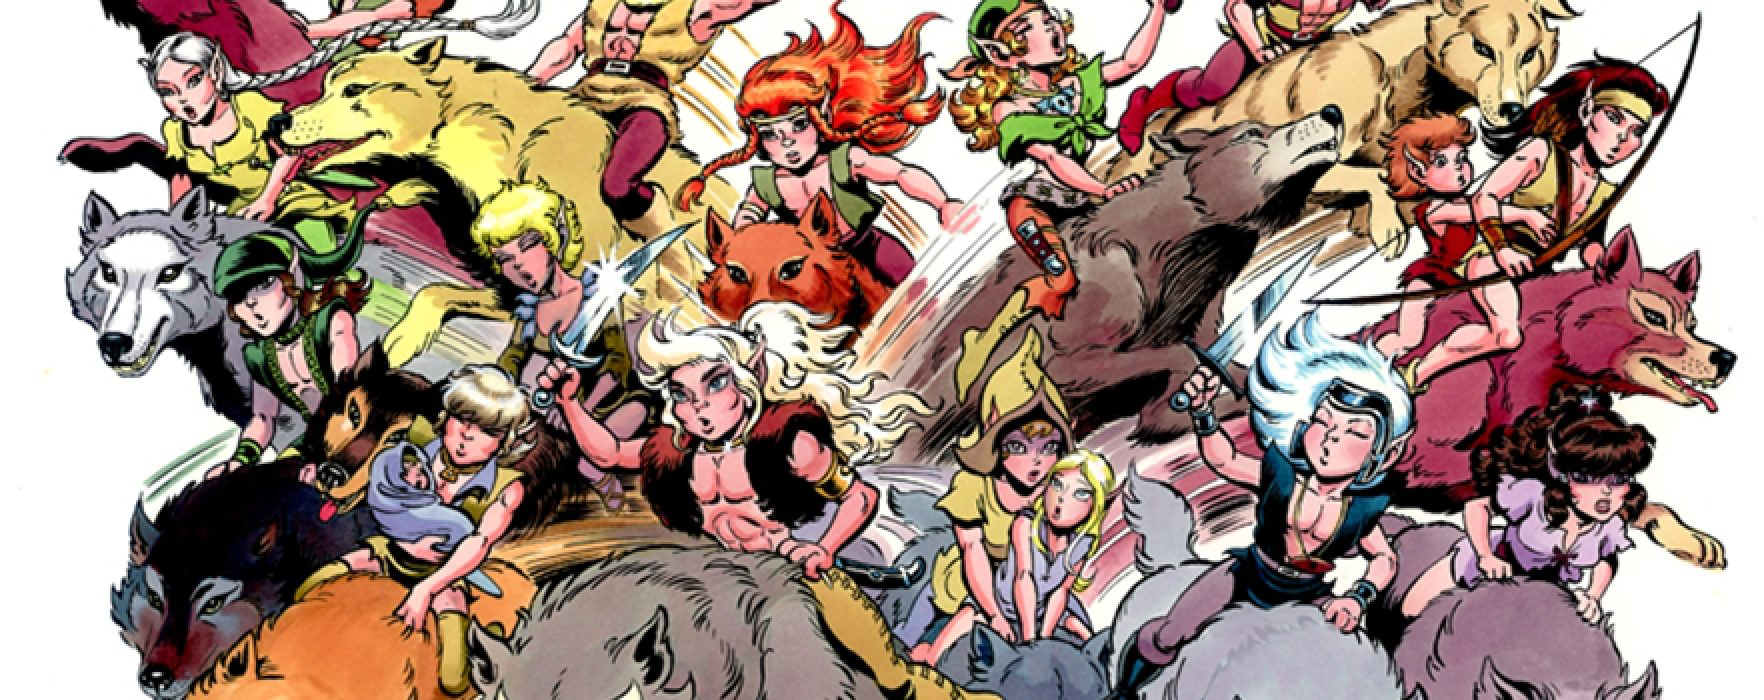 Elfquest: There and Back Again